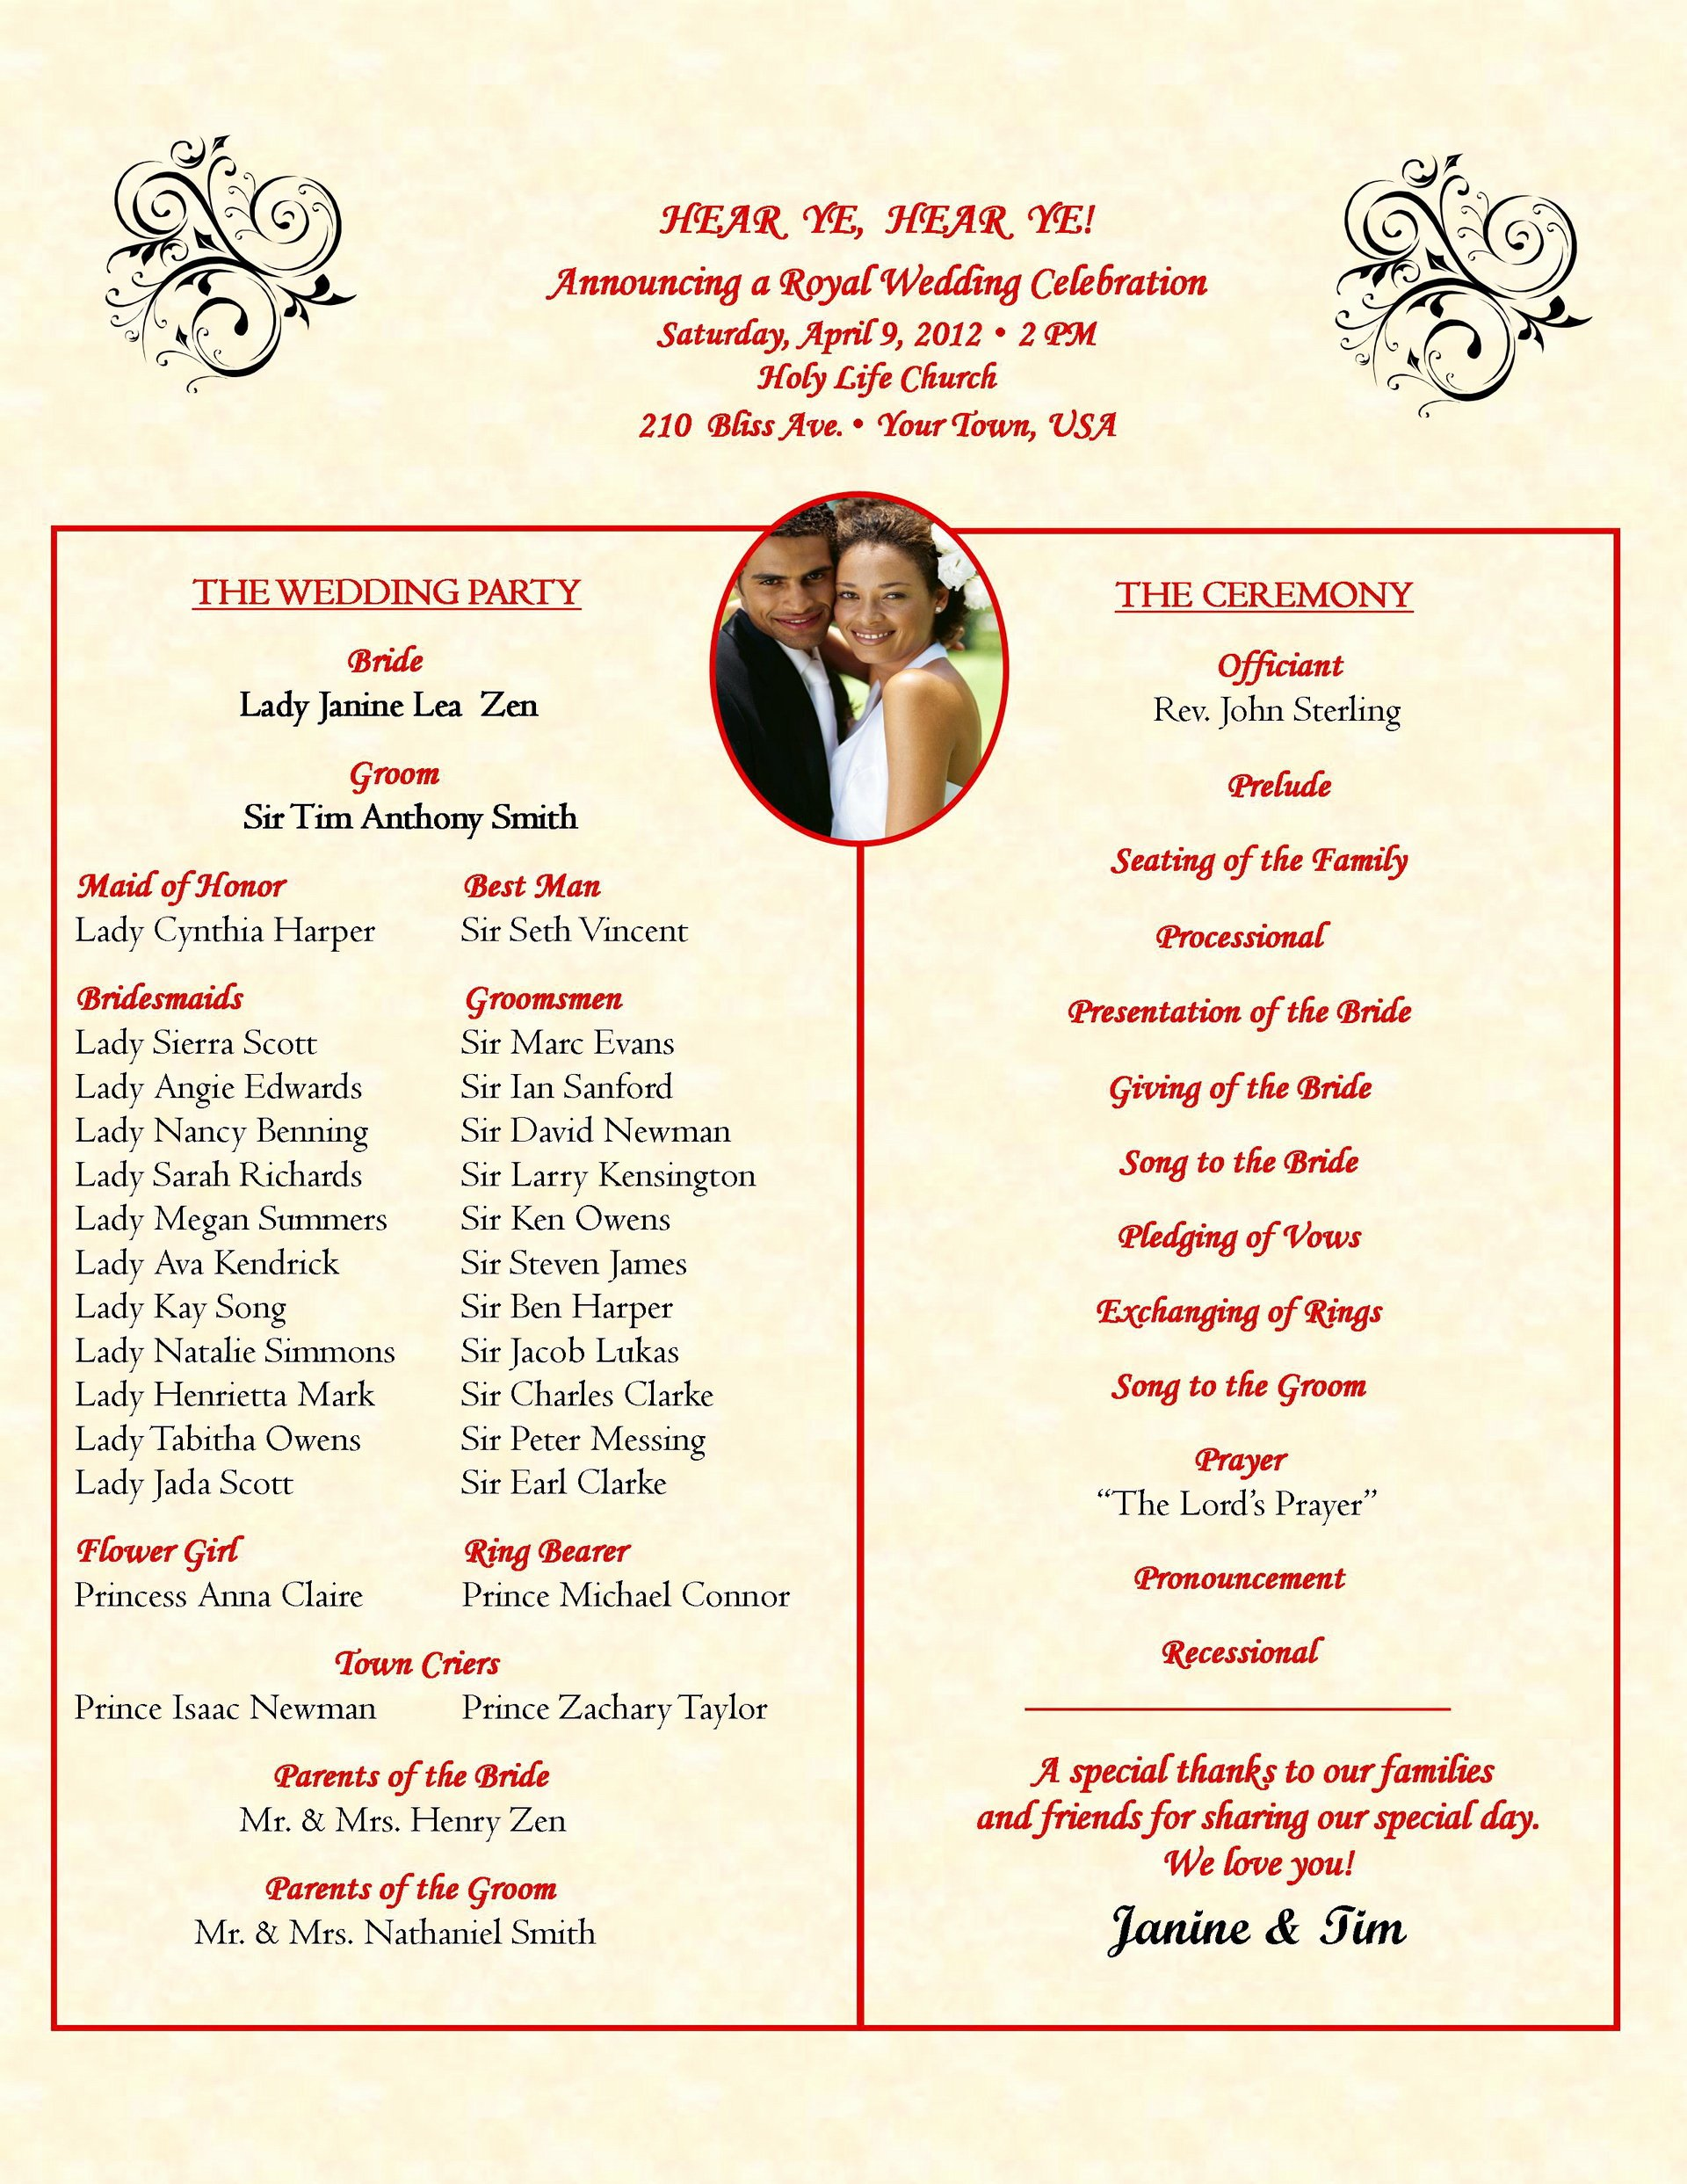 Baby Shower Program Template Luxury Planning A Baby Shower Program Ideas Detailed Guide